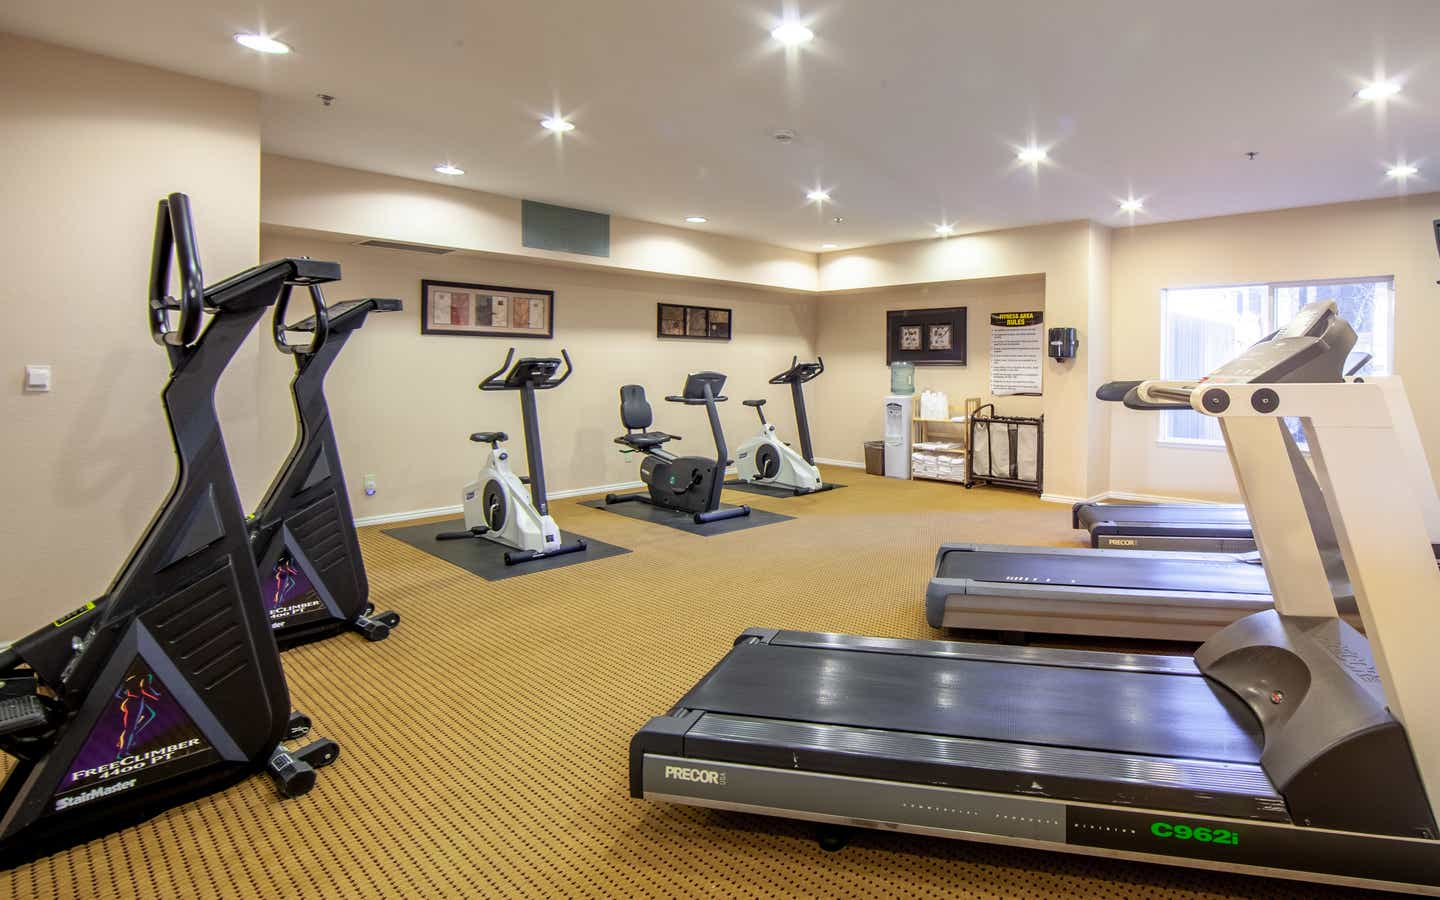 Fitness center with treadmills, ellipticals, and stationary bicycles at David Walley's Resort in Genoa, Nevada.